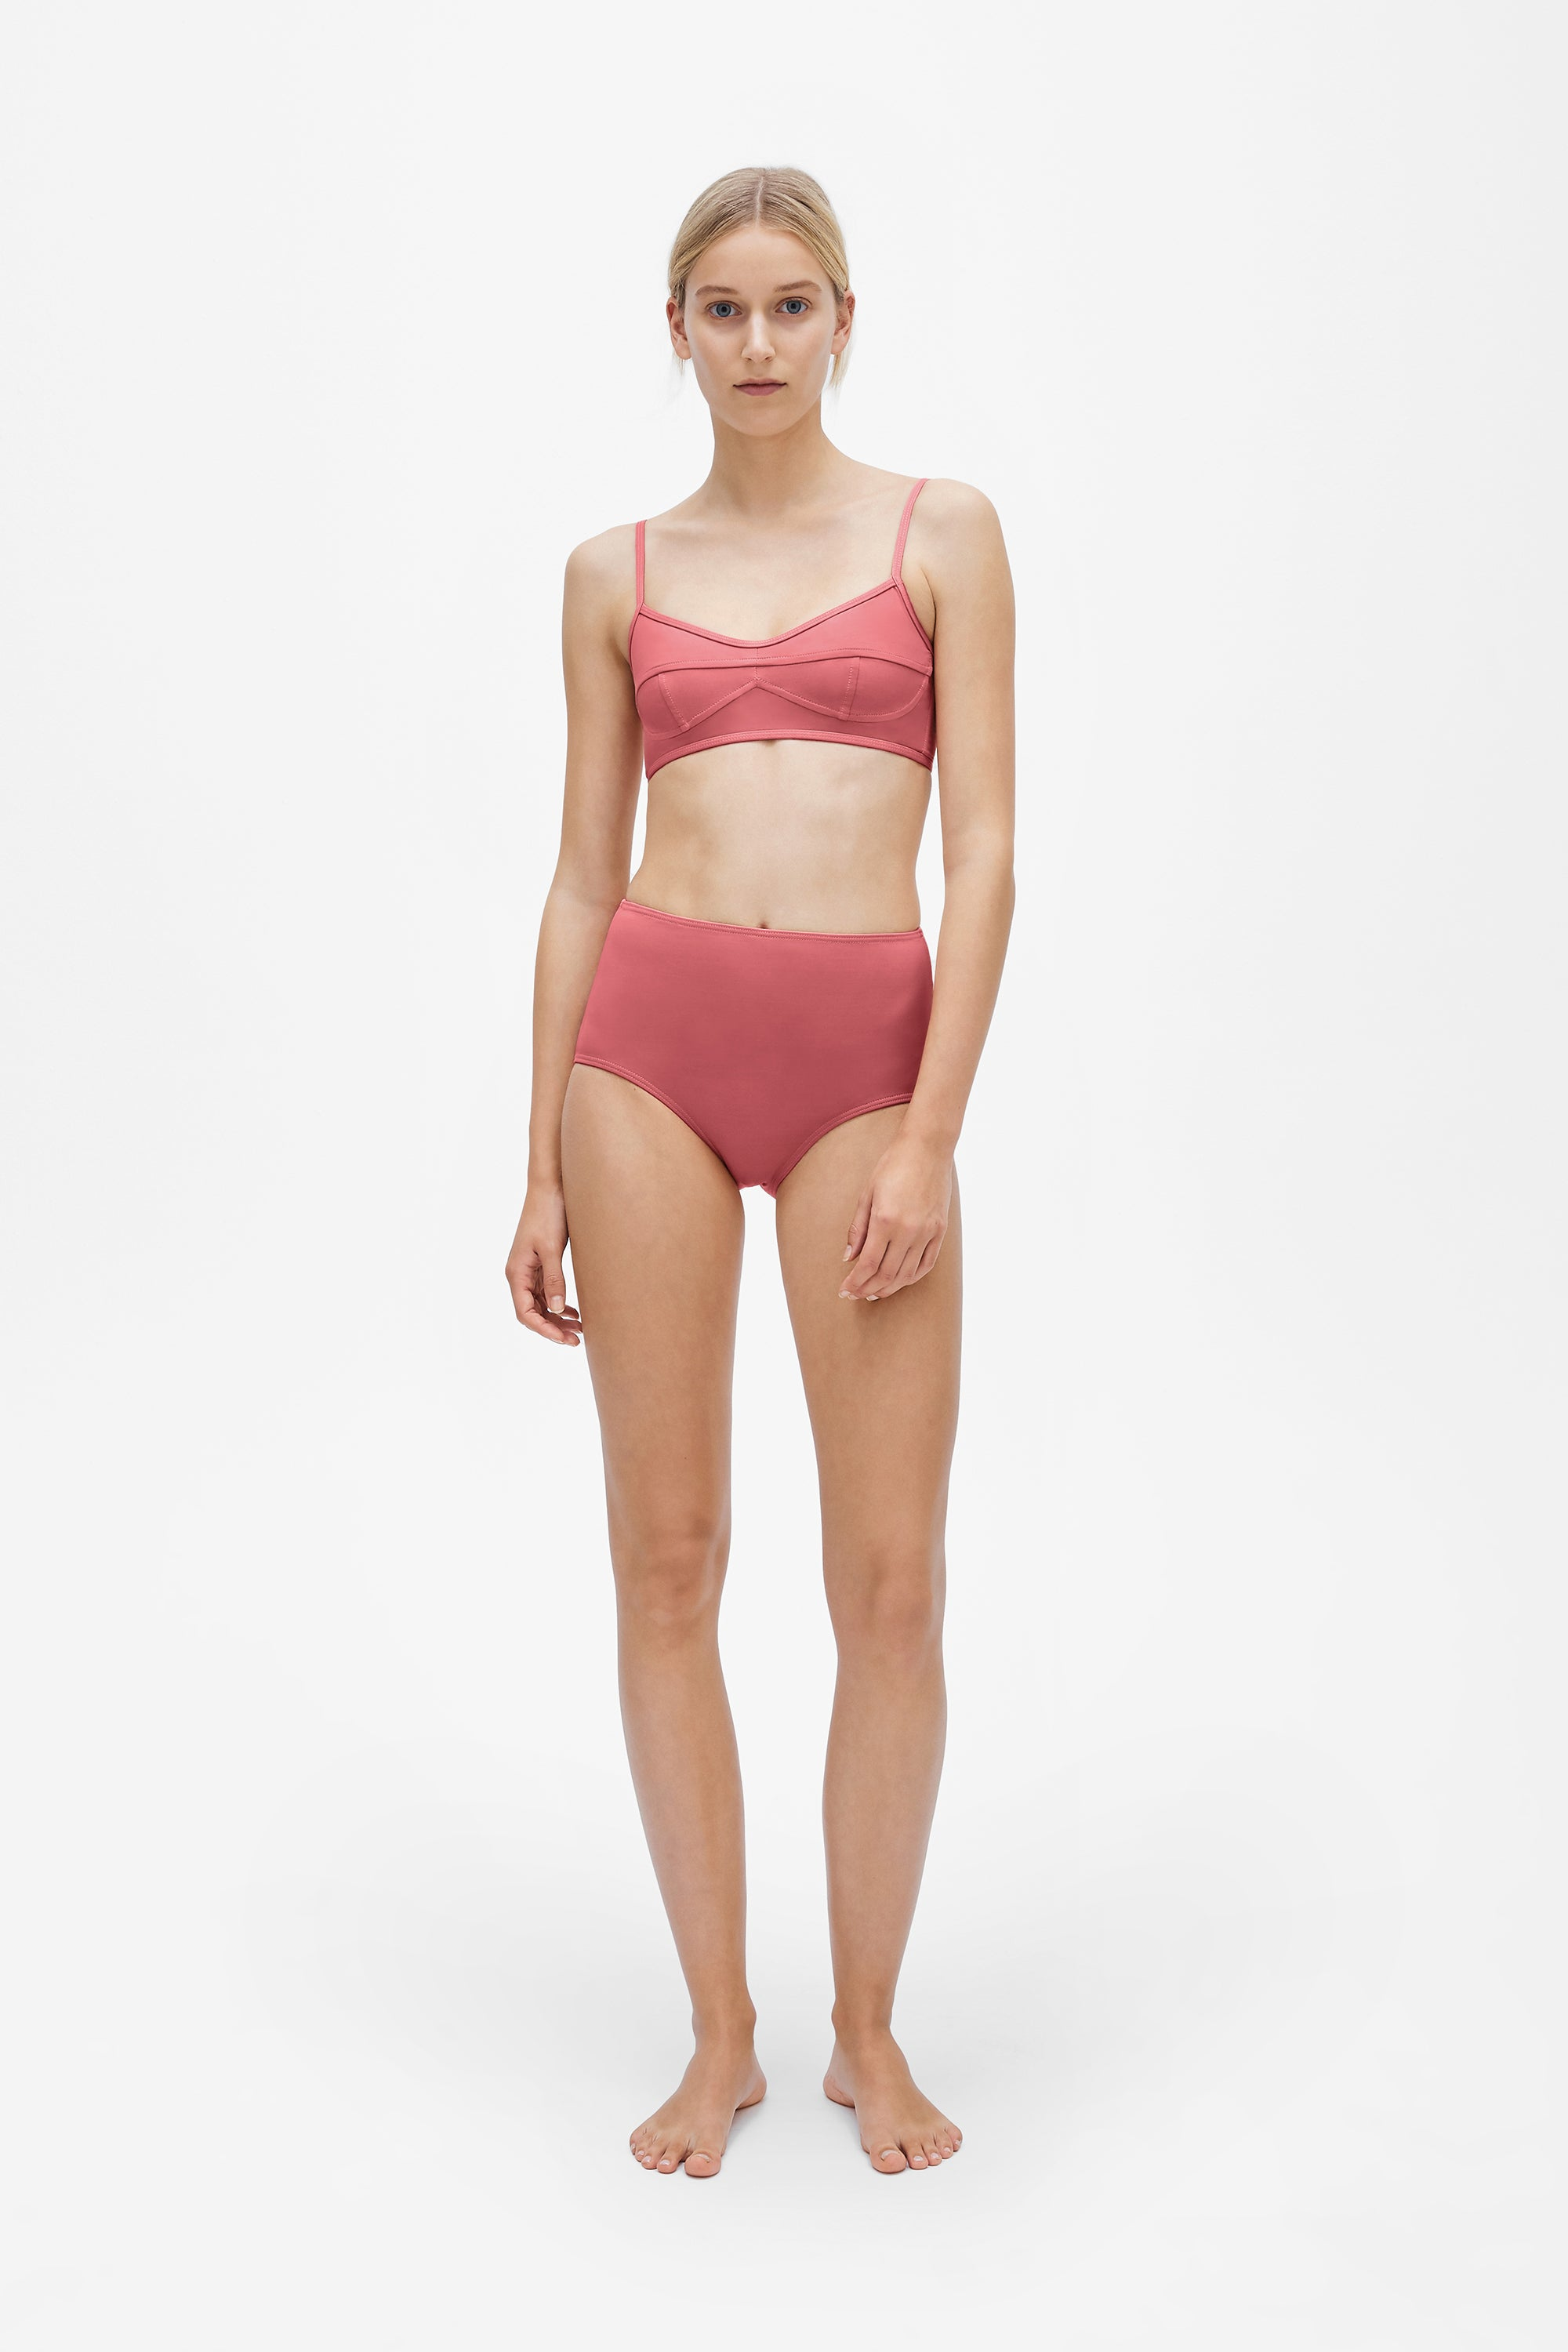 Suzi top - Dusted pink - Swim top - Her Line